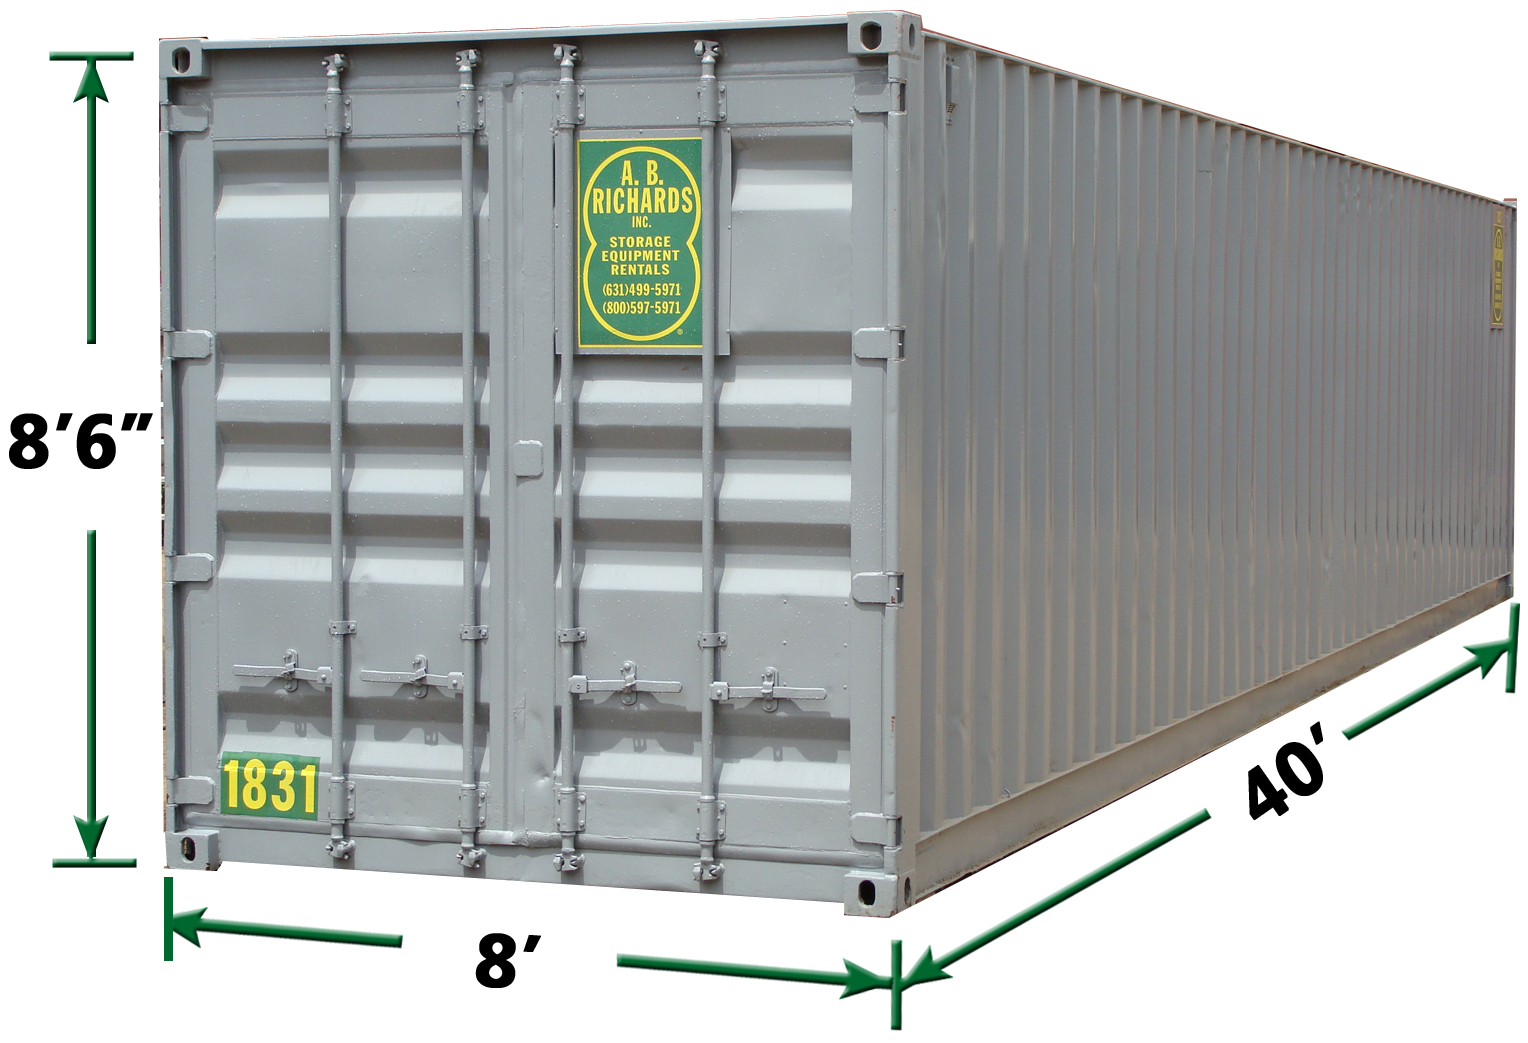 Renting 40ft Storage Containers from A.B. Richards